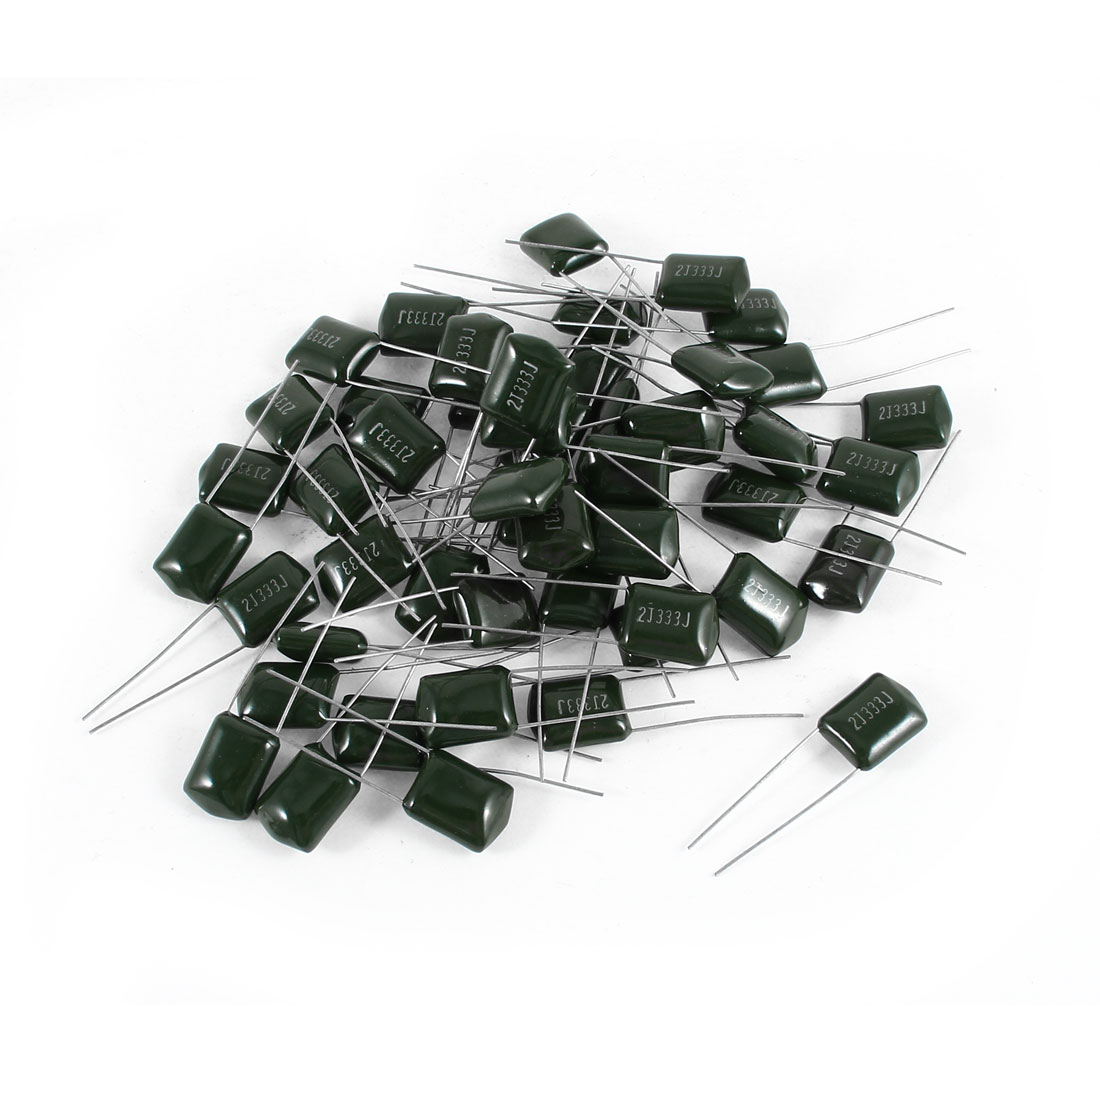 50 Pcs Radial Leads Polyester Film Cap Capacitance Capacitors Green 2J333J 630V 33nF 5%